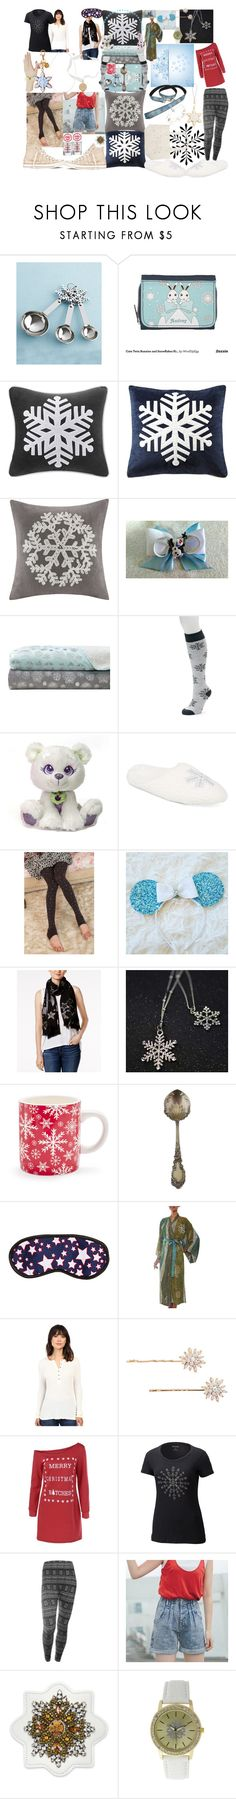 """""""almost winter woman"""" by lerp ❤ liked on Polyvore featuring Kate Aspen, Madison Park, Premier Comfort, SO, Charter Club, Little Flower, Converse, INC International Concepts, Sur La Table and NOVICA"""